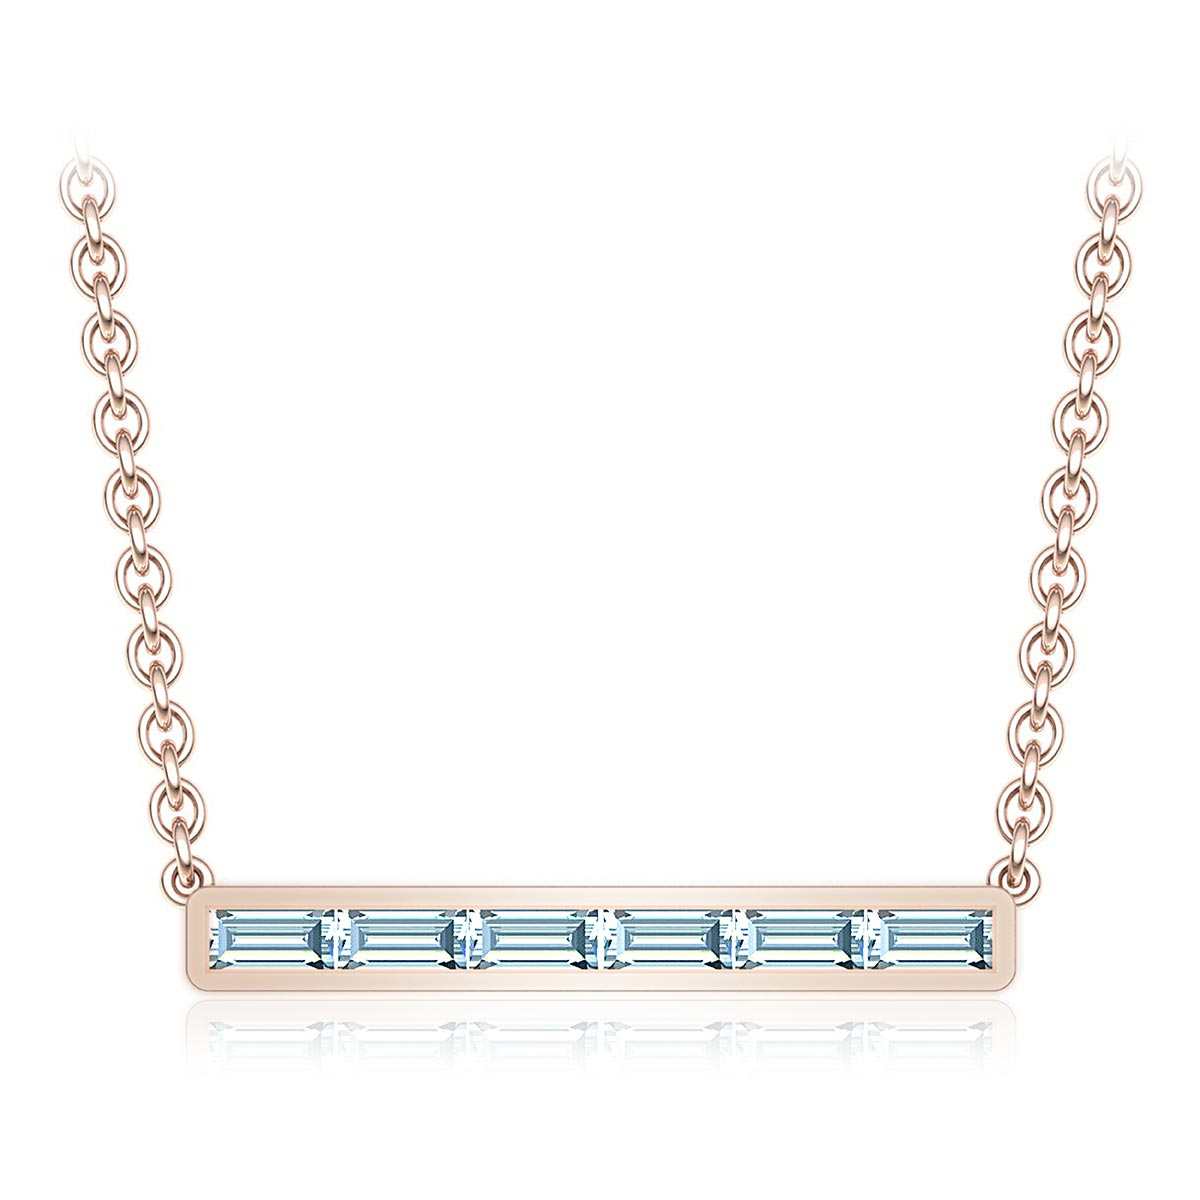 Éternité Diamond Necklace (7/8 CT. TW.)